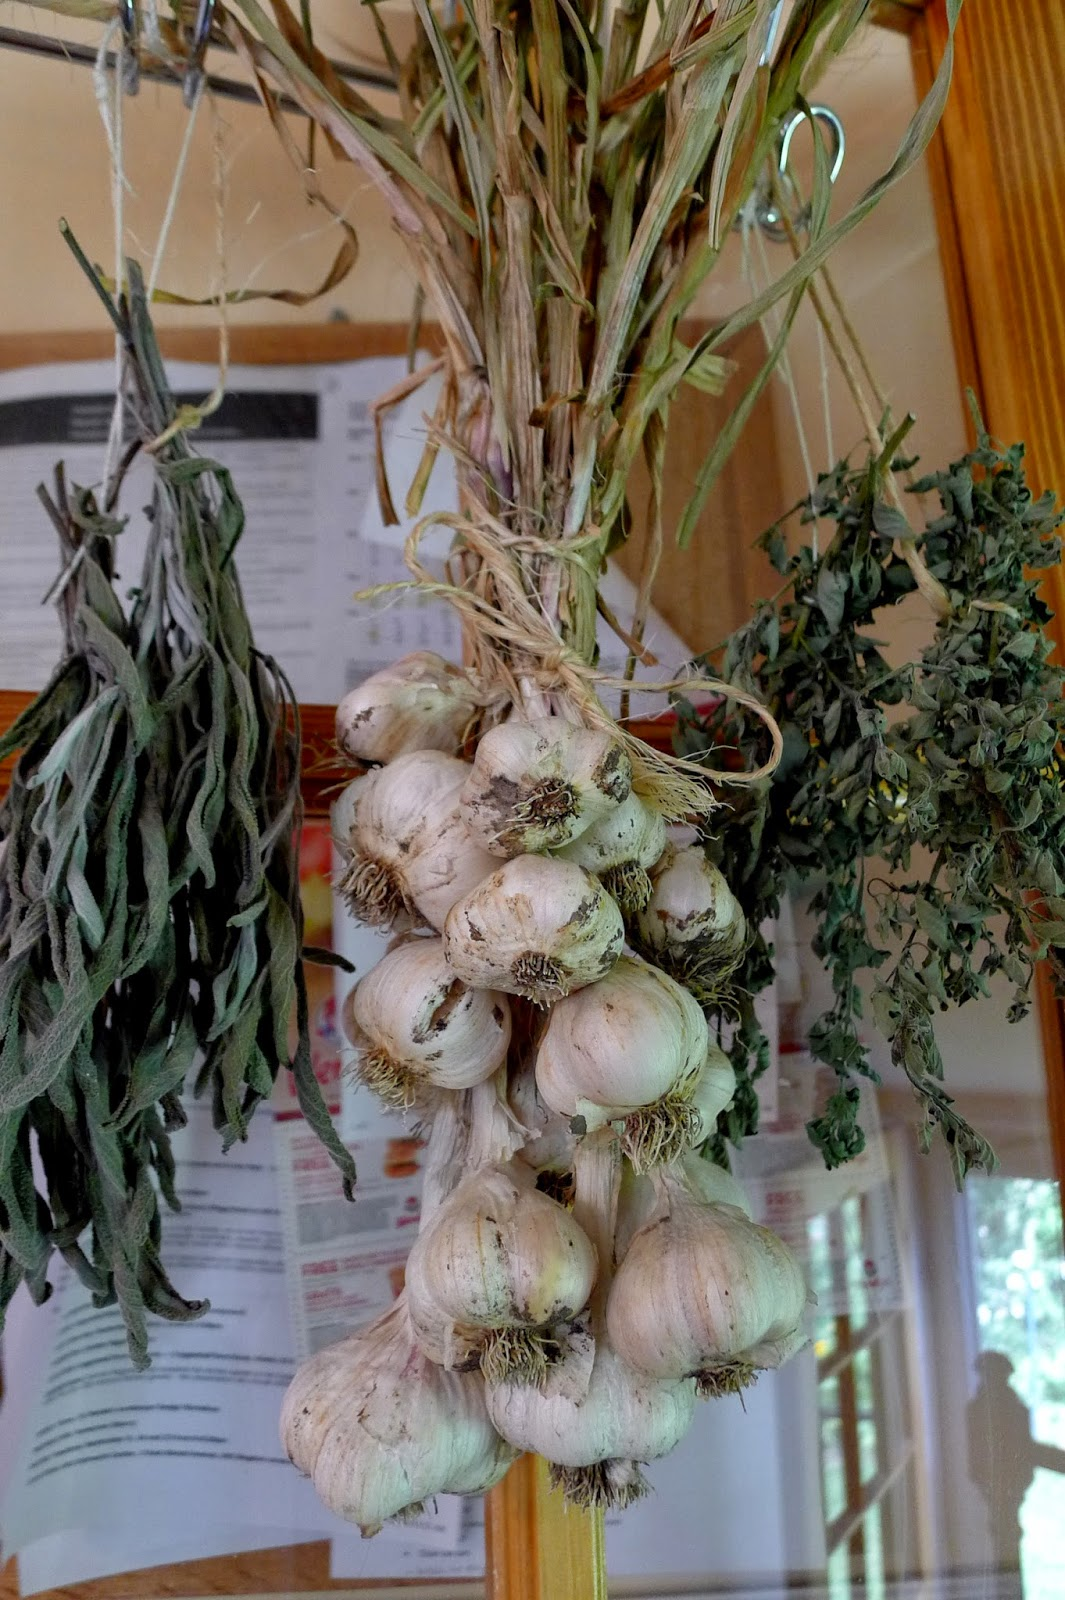 Cured garlic, storing garlic, preserving, urban farming